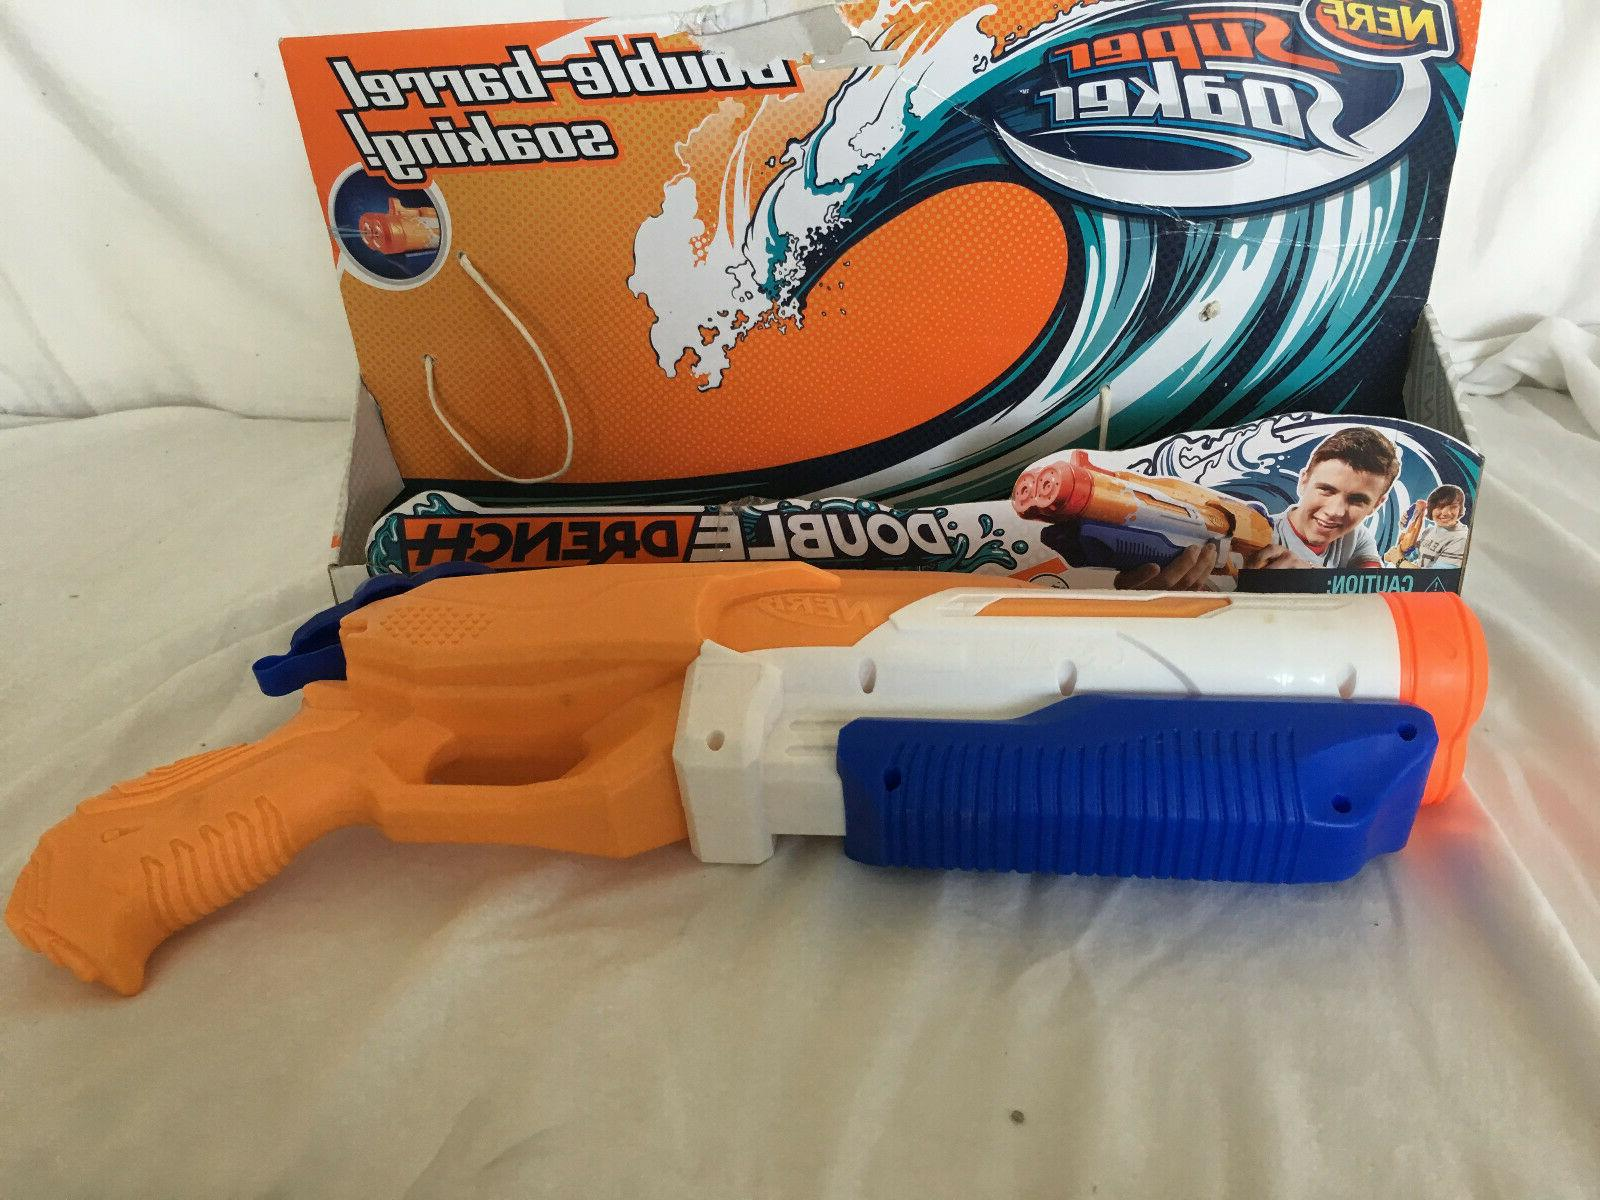 Nerf Drench Double Gun Damaged Package